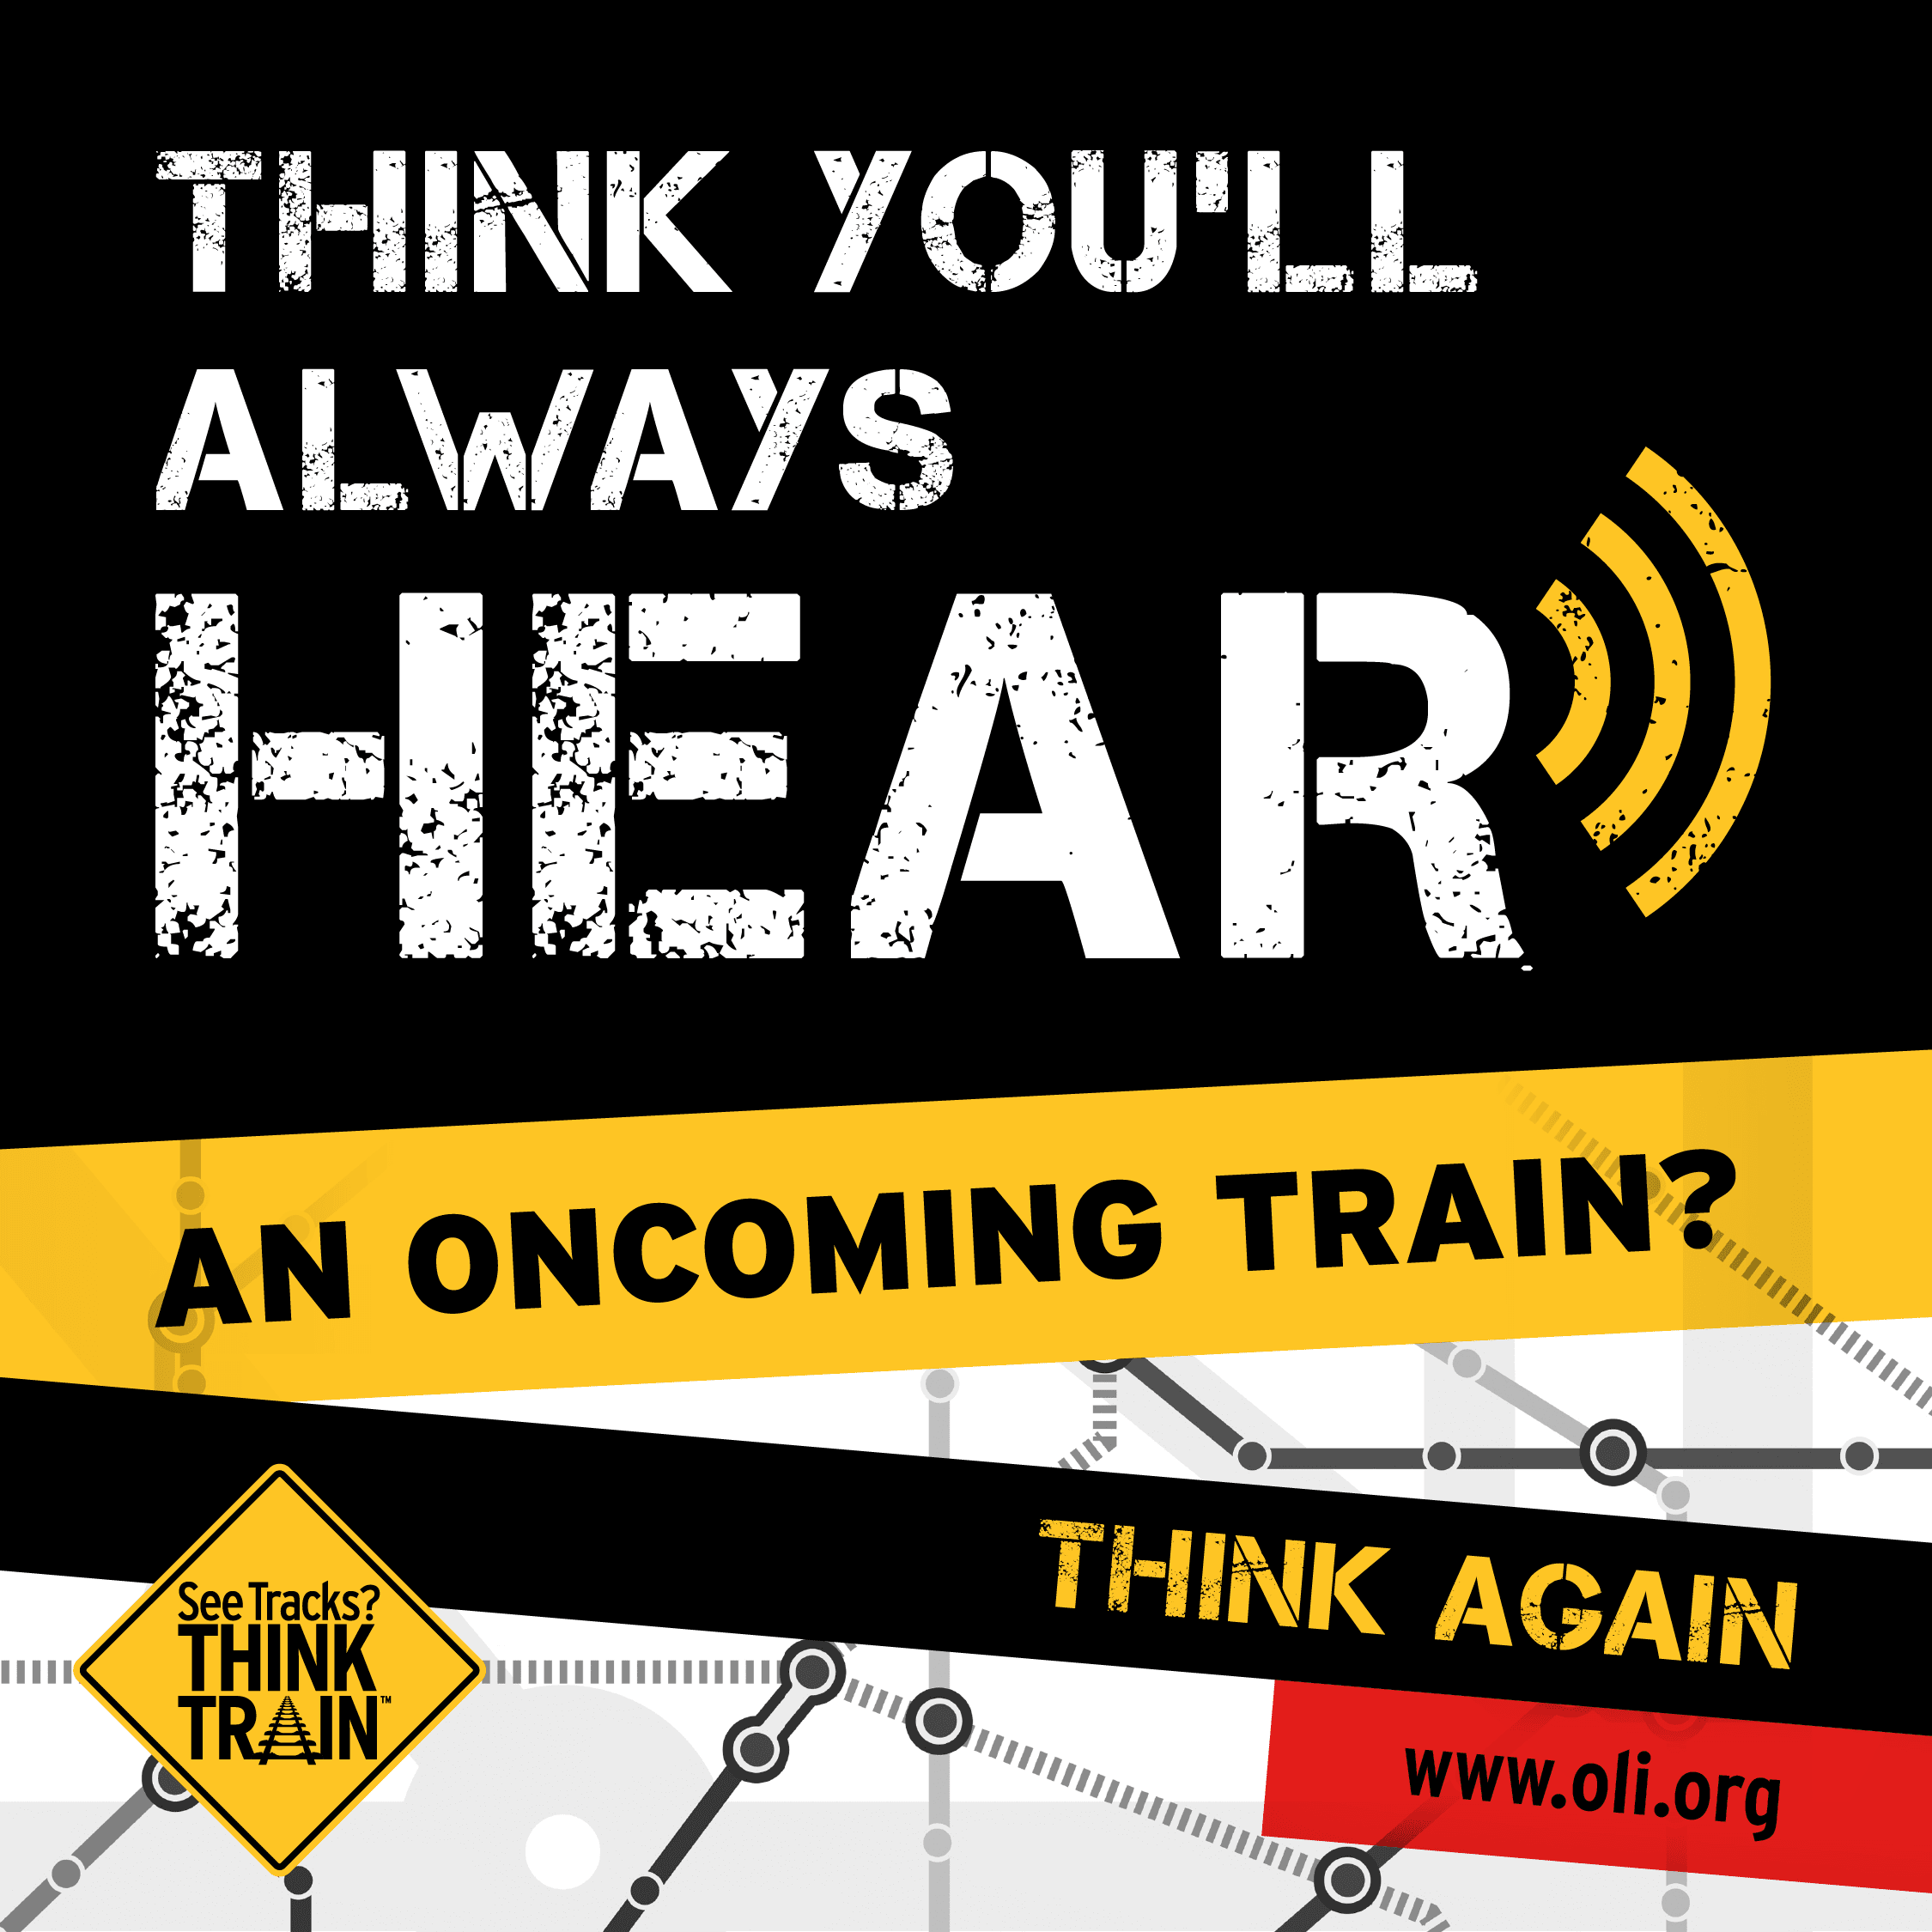 Be aware, you can't always hear an oncoming train